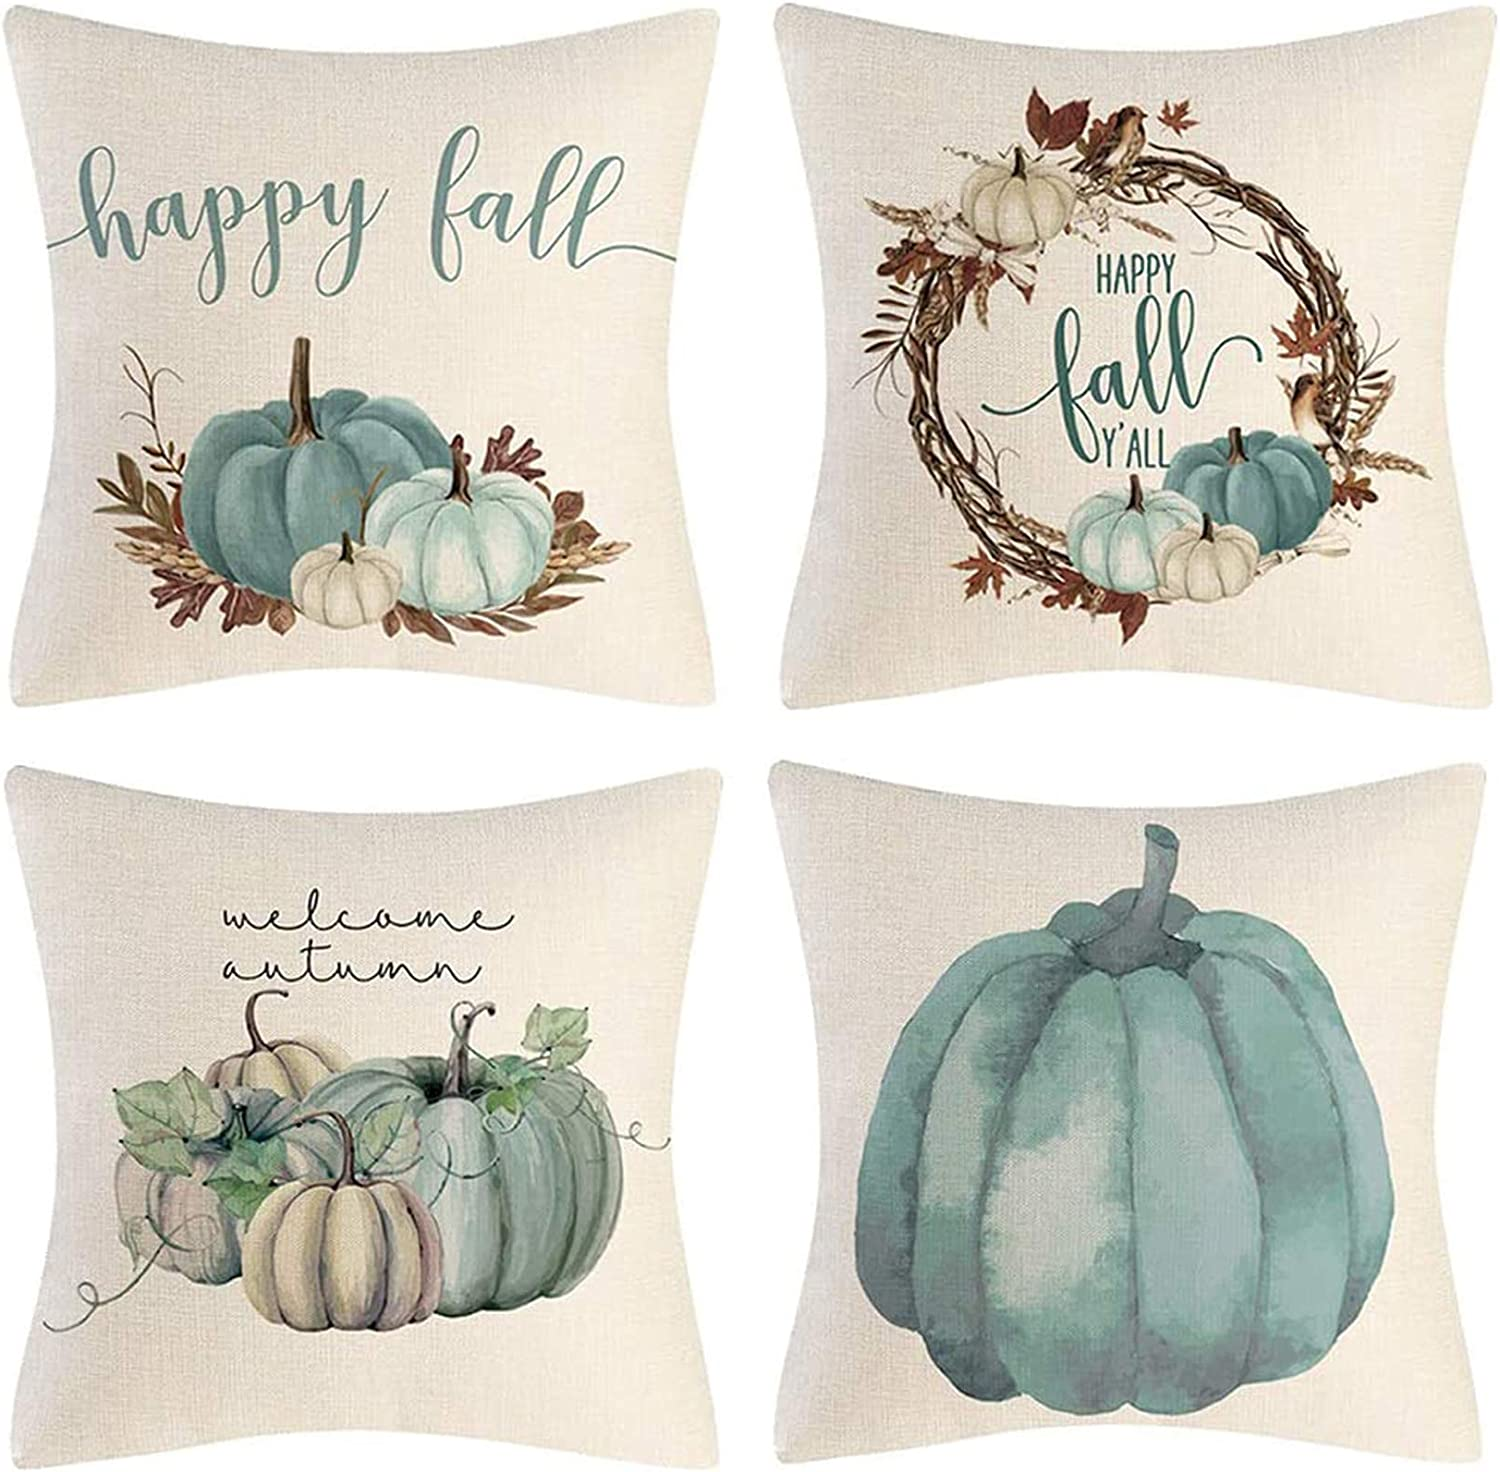 CHICHIC Fall Throw Pillow Covers, 18x18 Inch Autumn Pumpkin Decorations Throw Pillows Cases, Fall Decor Thanksgiving Day Decorations Harvest Decorative Cushion Covers for Couch, Set of 4, Blue